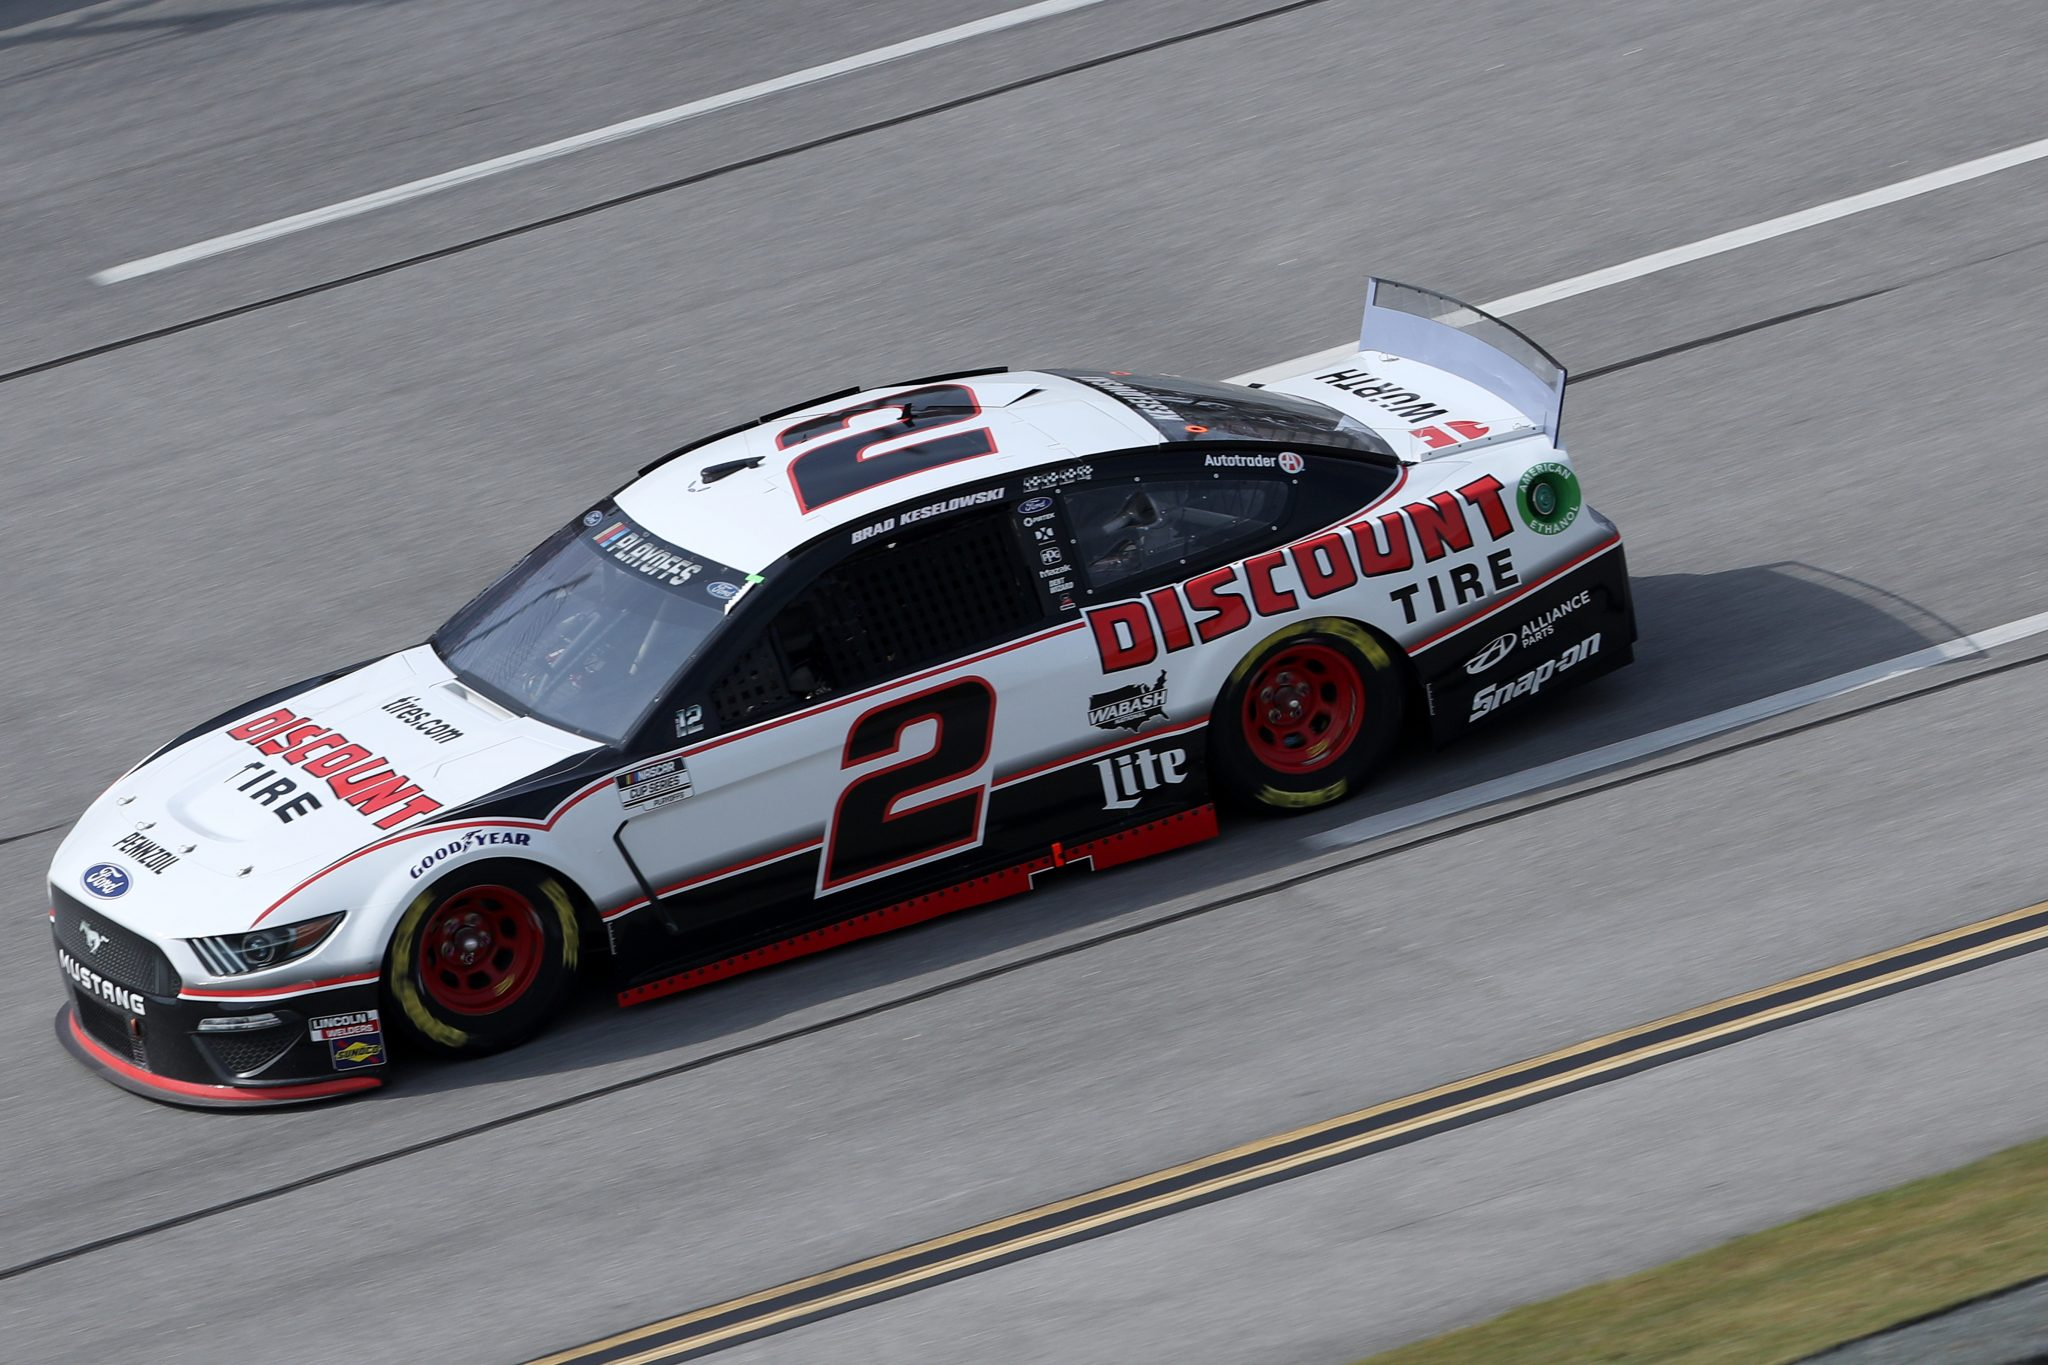 TALLADEGA, ALABAMA - OCTOBER 04: Brad Keselowski, driver of the #2 Discount Tire Ford, drives during the NASCAR Cup Series YellaWood 500 at Talladega Superspeedway on October 04, 2020 in Talladega, Alabama. (Photo by Chris Graythen/Getty Images) | Getty Images